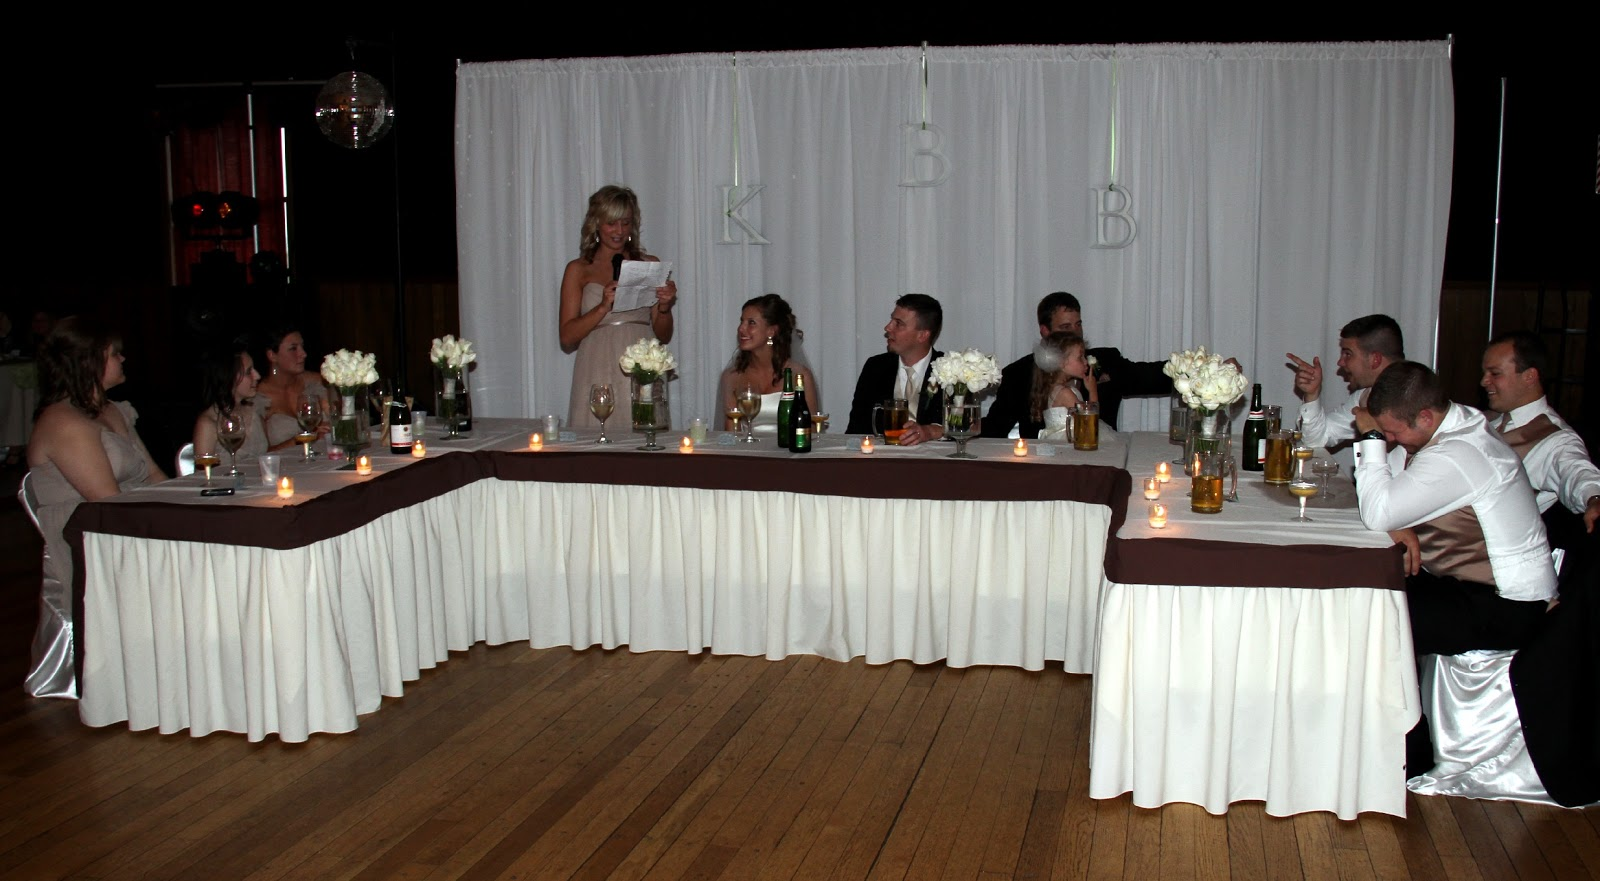 Down The Aisle Head Table Or Sweetheart Table: Wedding Accessories Ideas